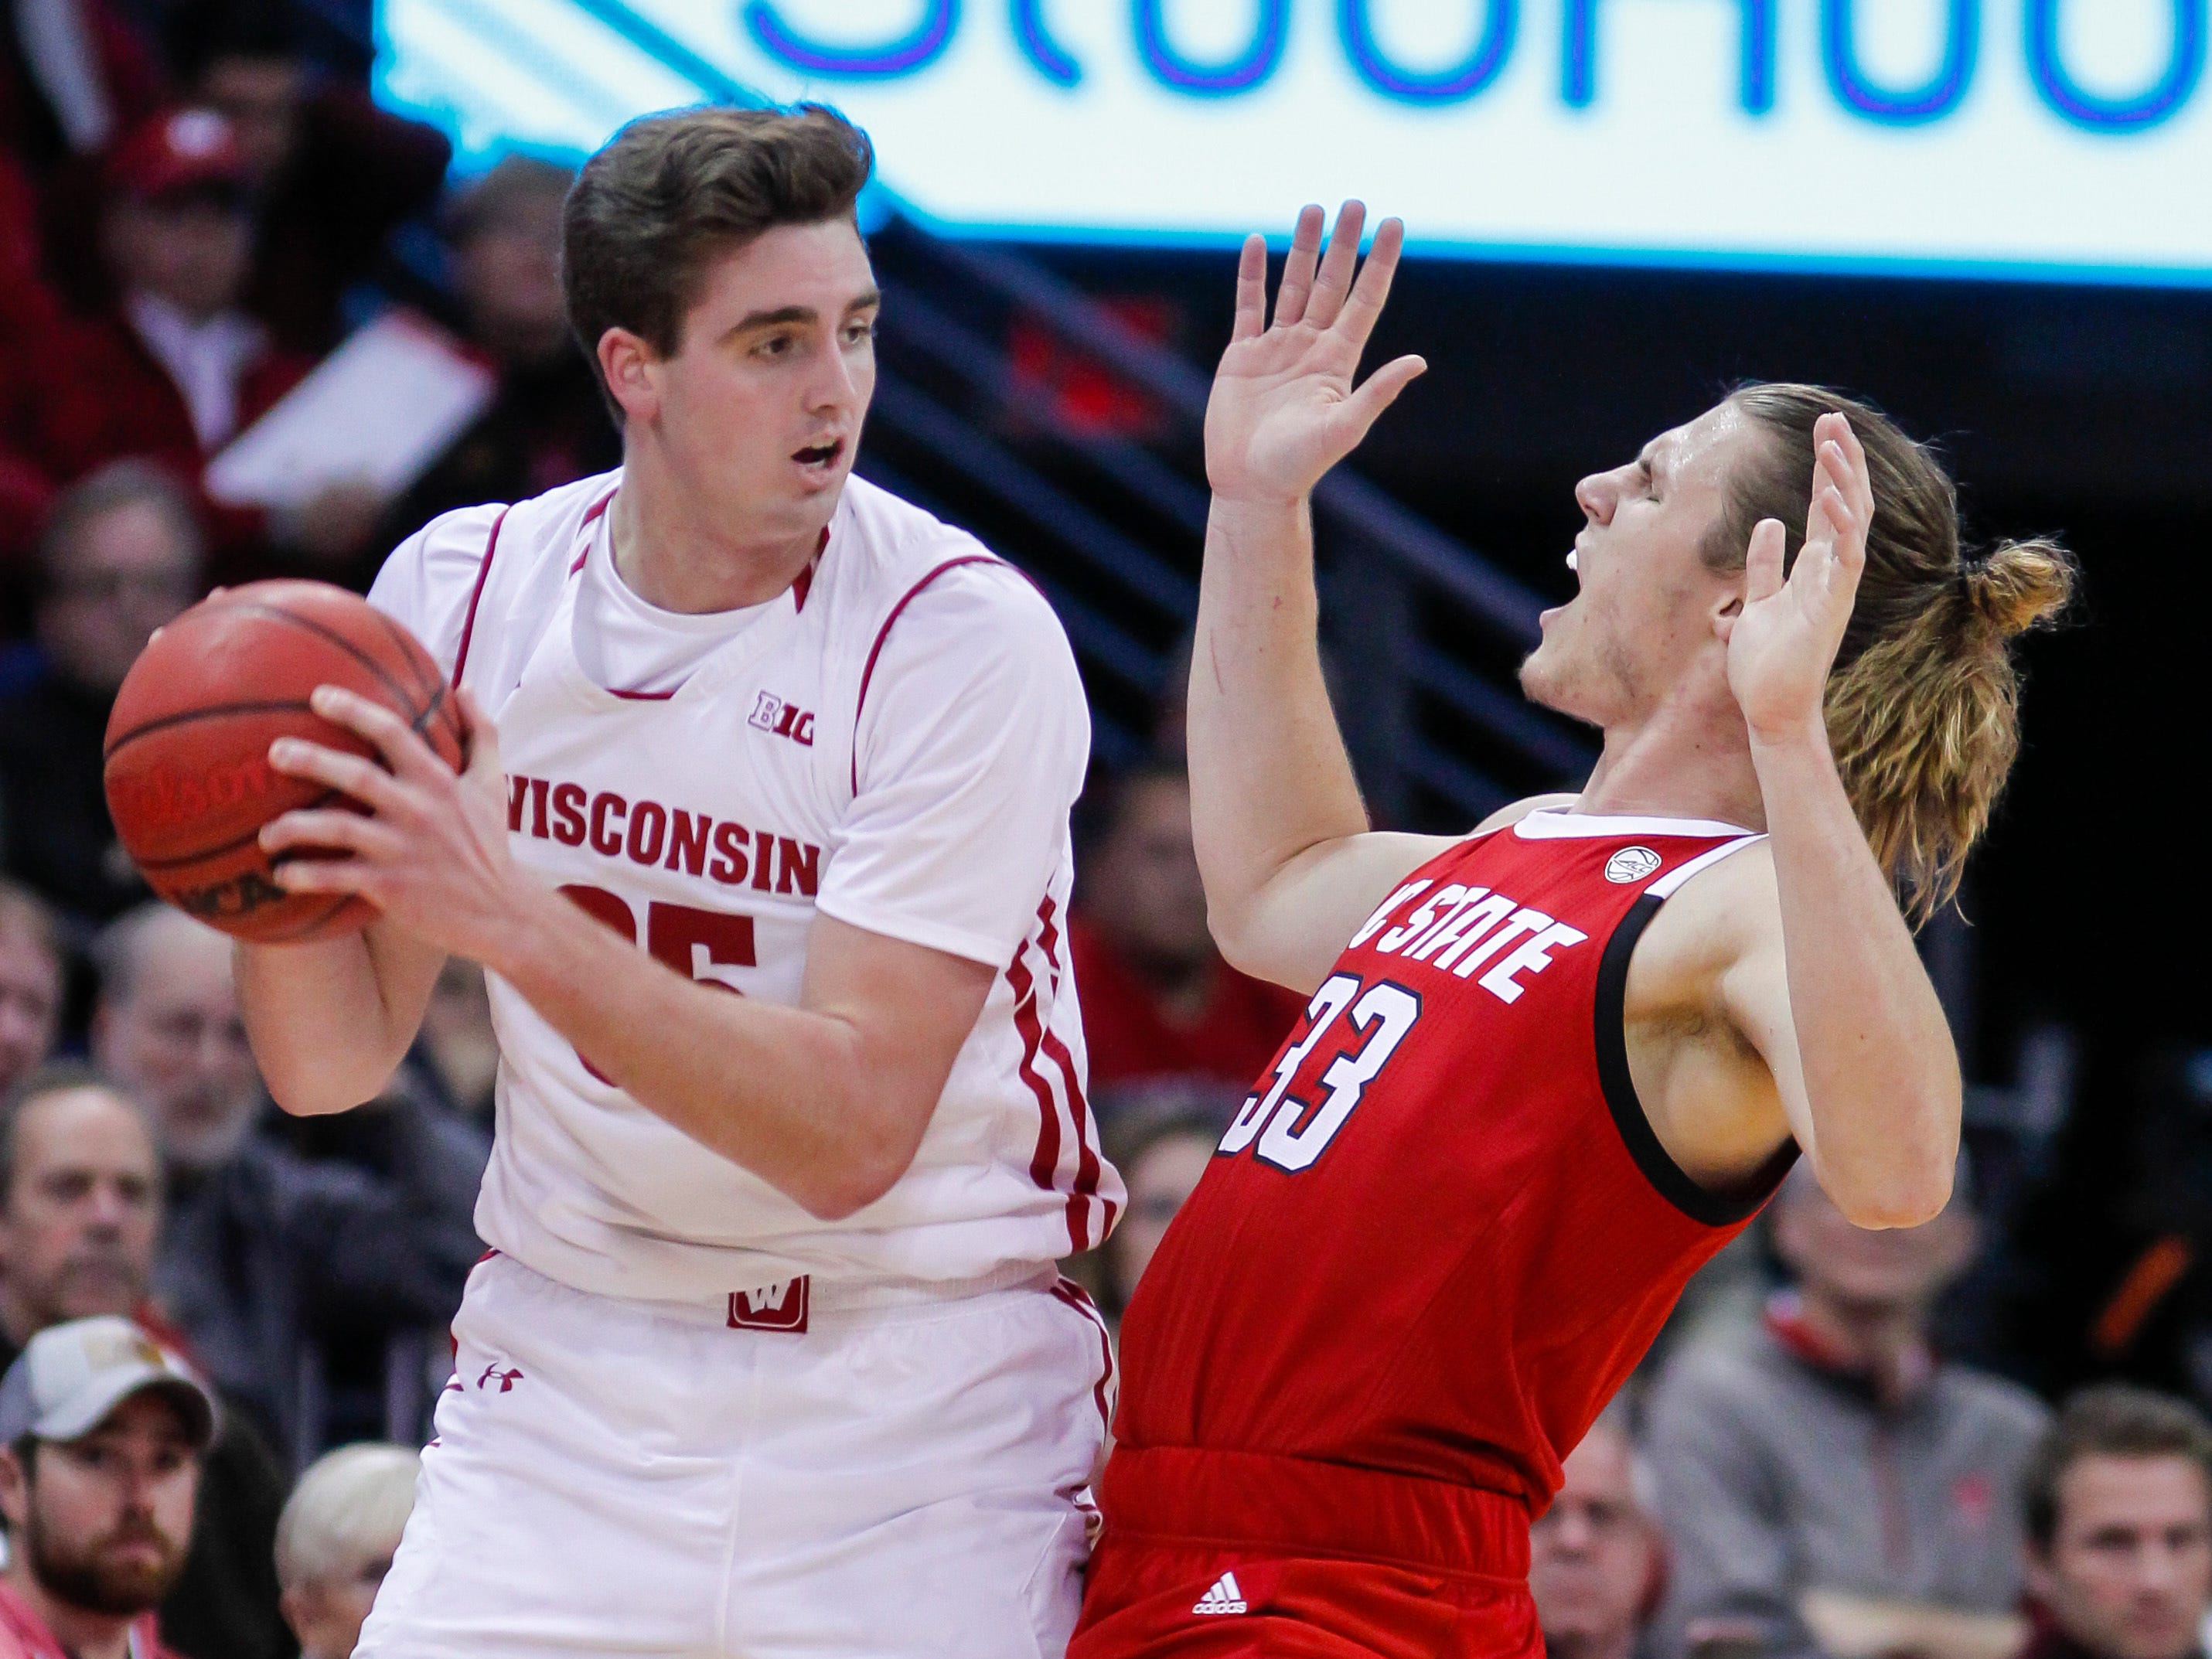 Wisconsin's Nate Reuvers is defended by North Carolina State's Wyatt Walker.